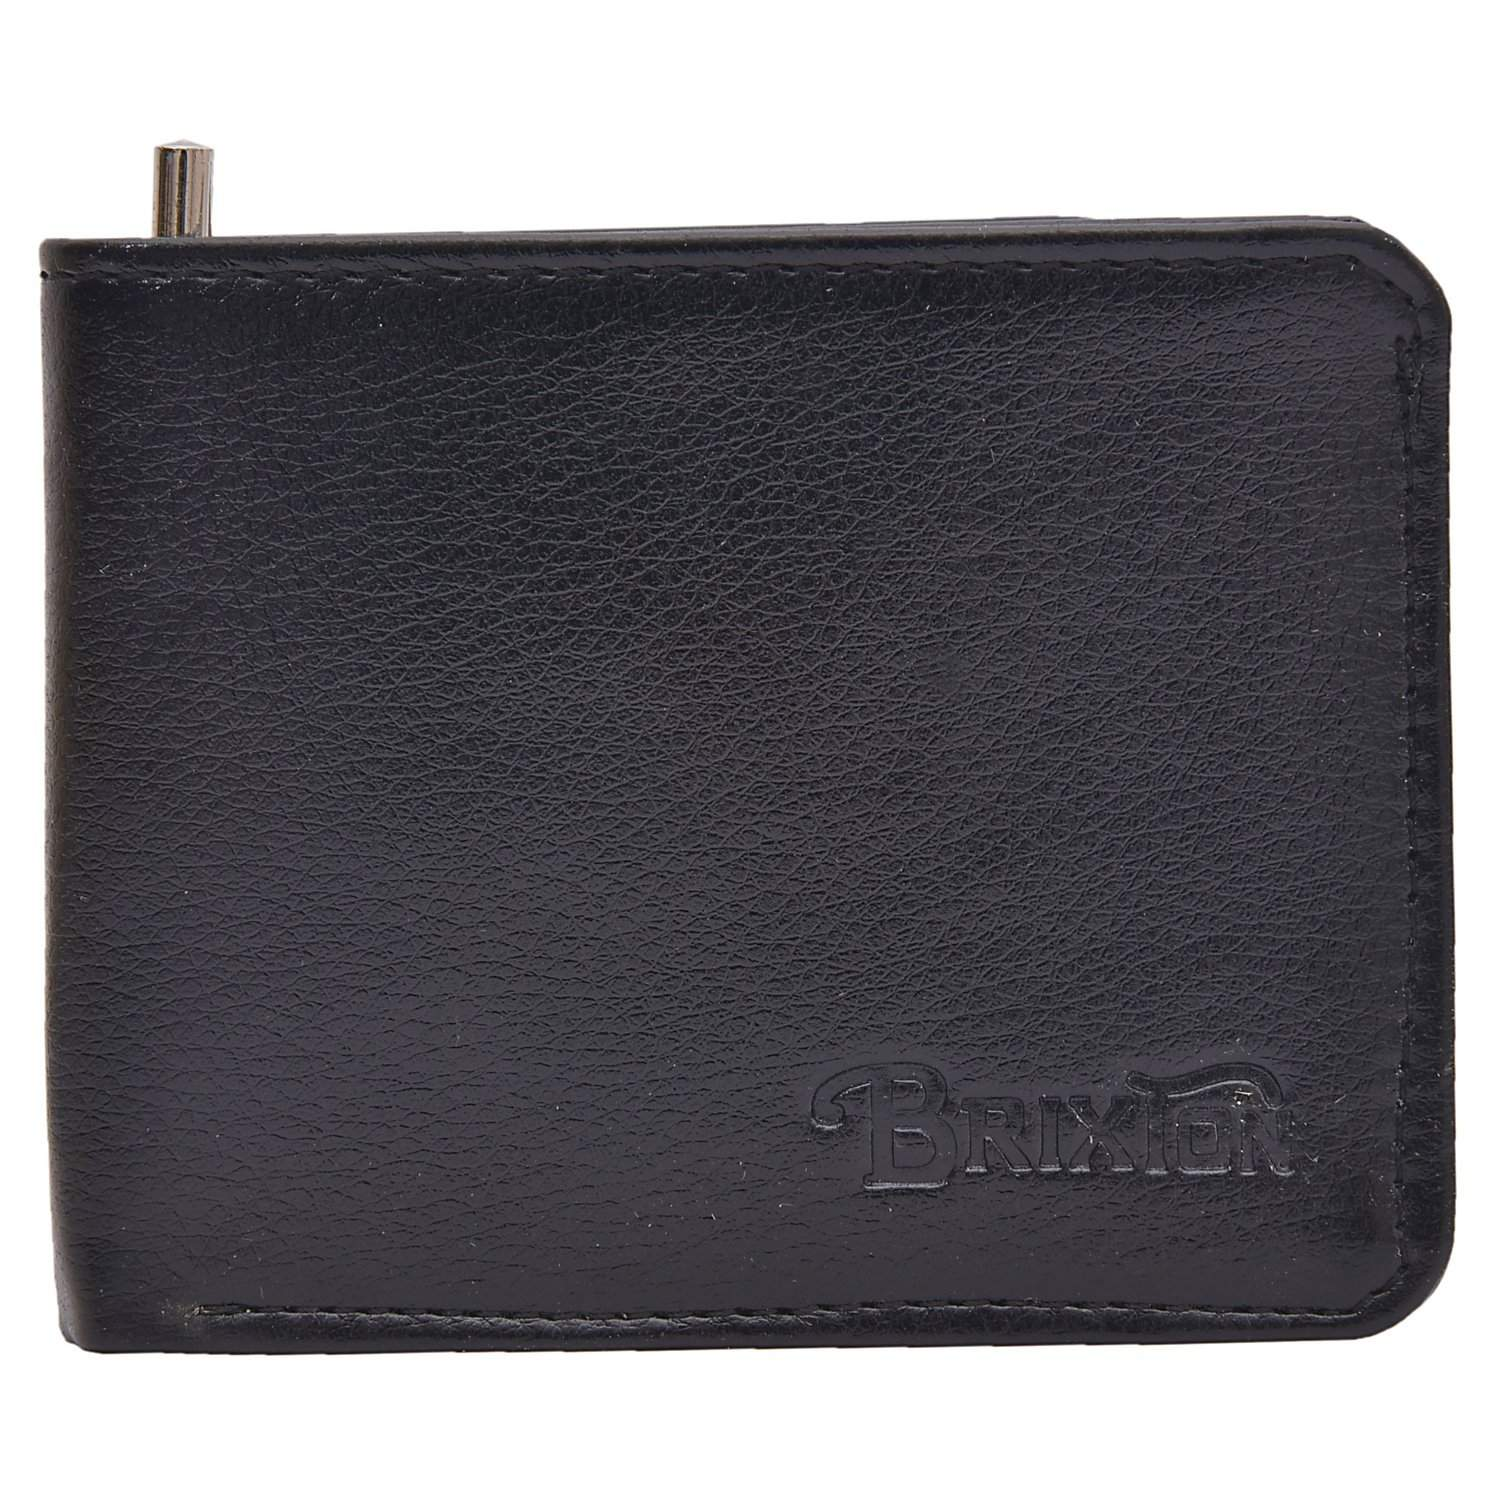 Men's Stylish PU Leather Wallet (Black) - Bagaholics Gift